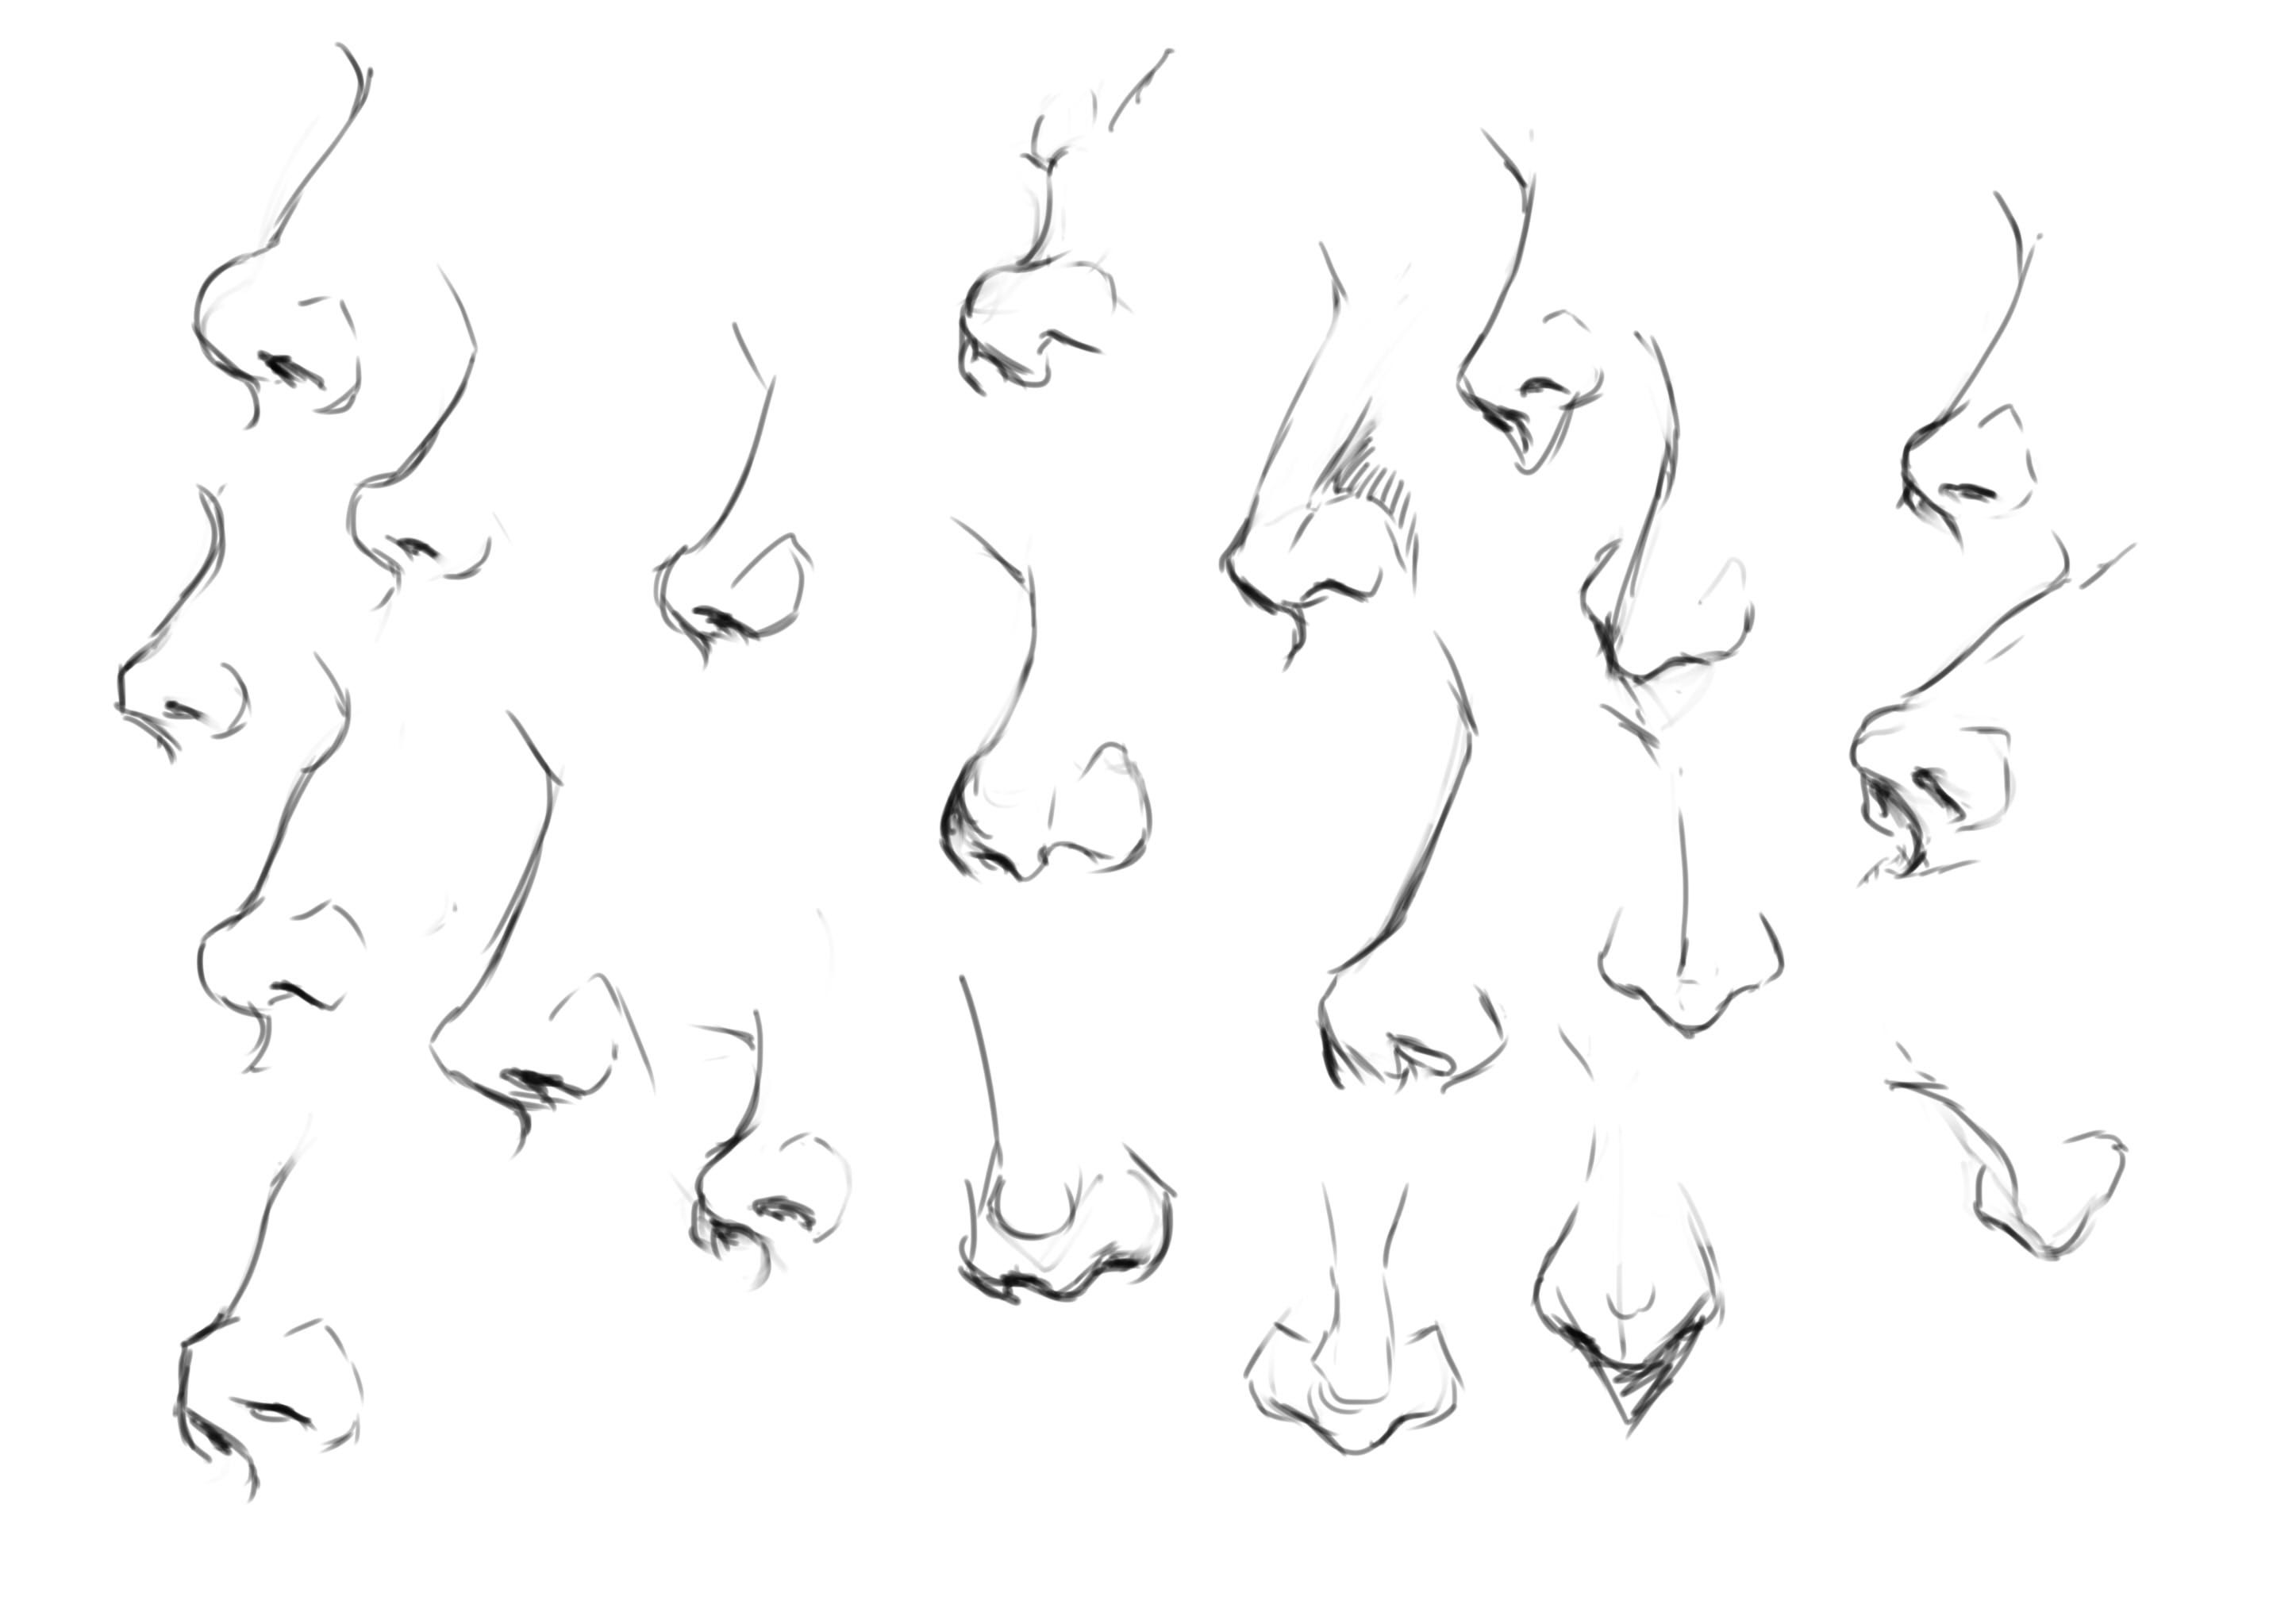 Practice Noses, Figures, and Motivation Nose drawing